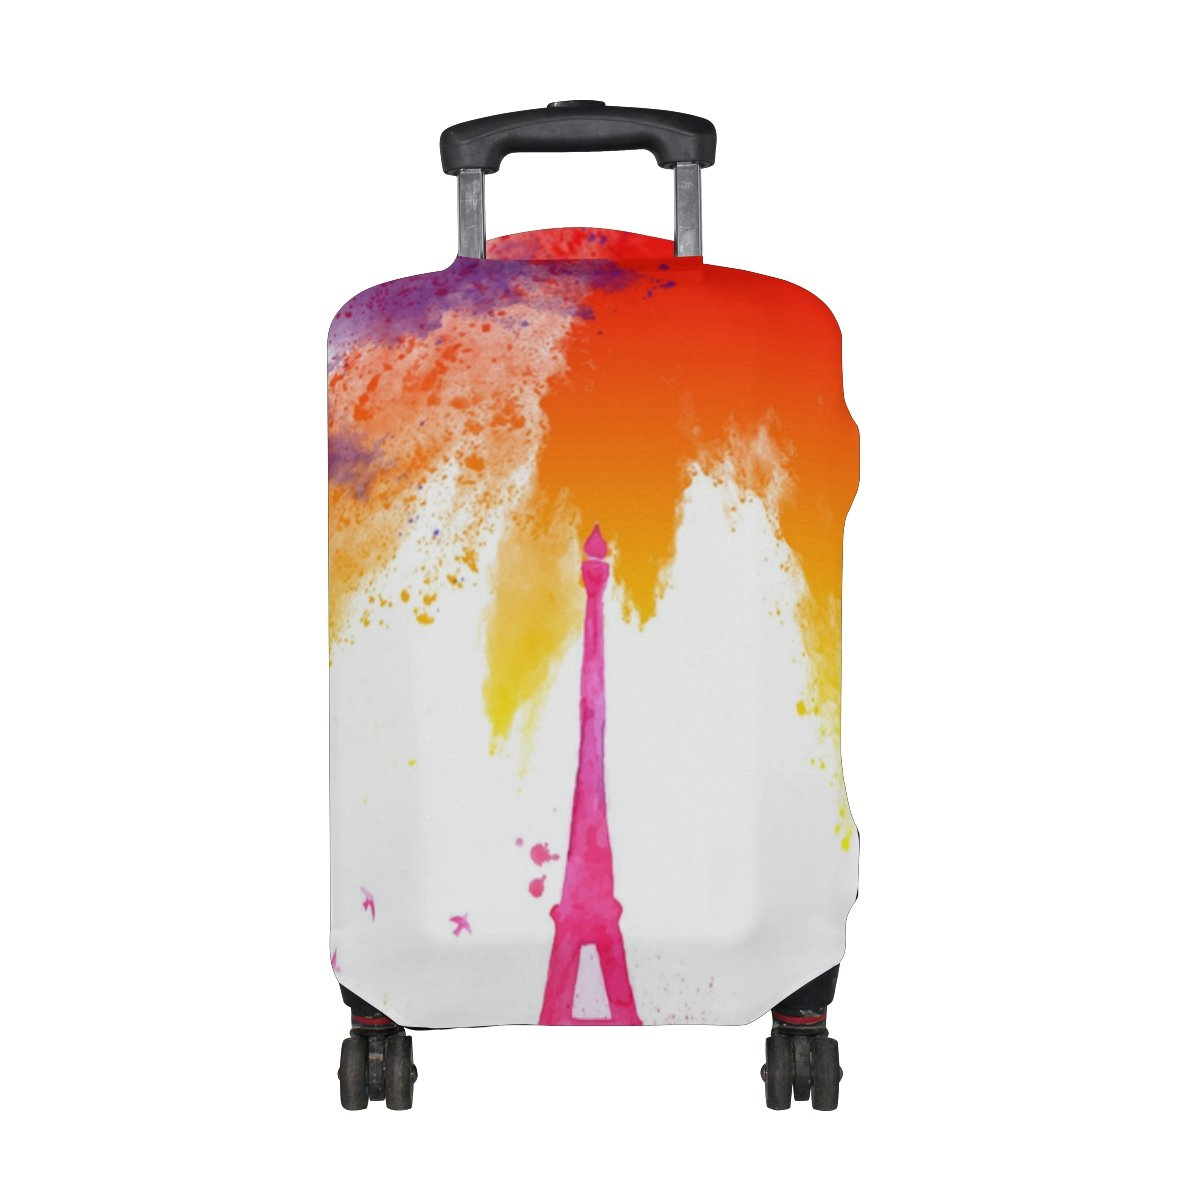 LEISISI Watercolor City Eiffel Tower Luggage Cover Elastic Protector Fits XL 29-32 in Suitcase